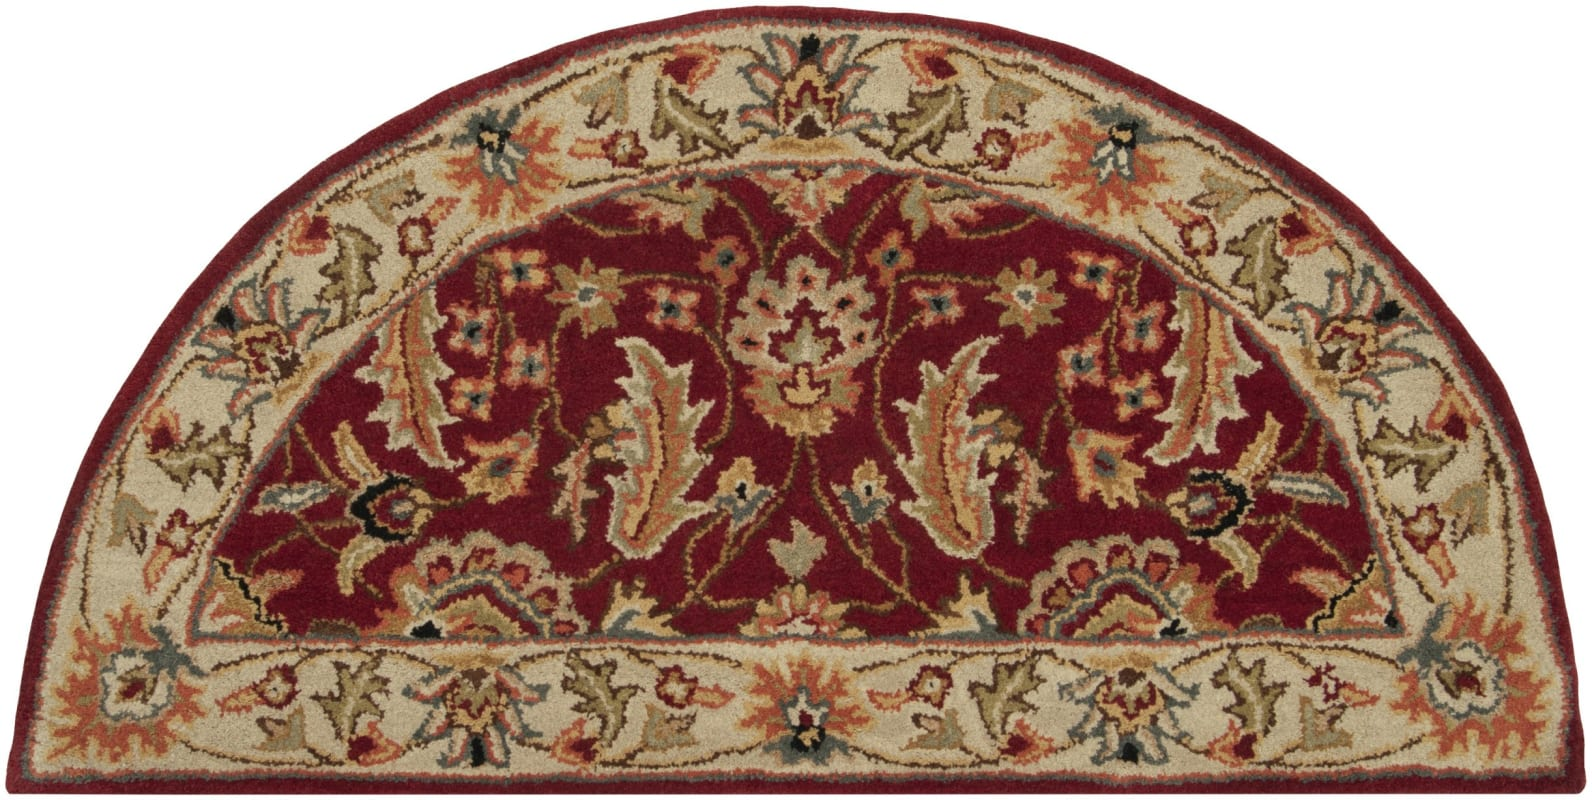 Surya CAE-1022 Caesar Hand Tufted Wool Rug Red 2 x 4 Hearth Home Decor